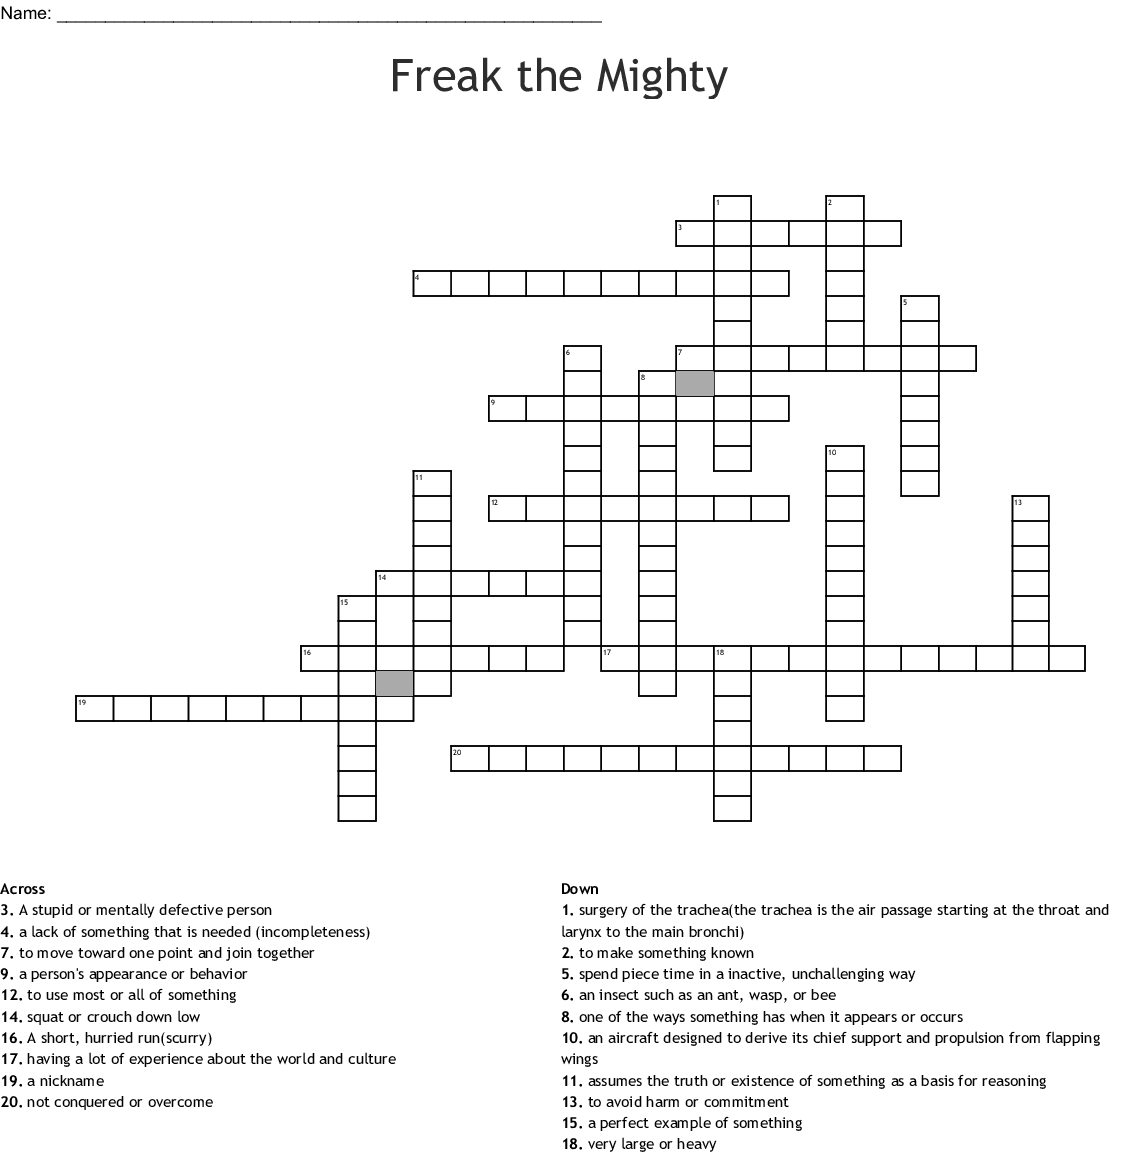 Freak The Mighty Chapters 1 8 Crossword